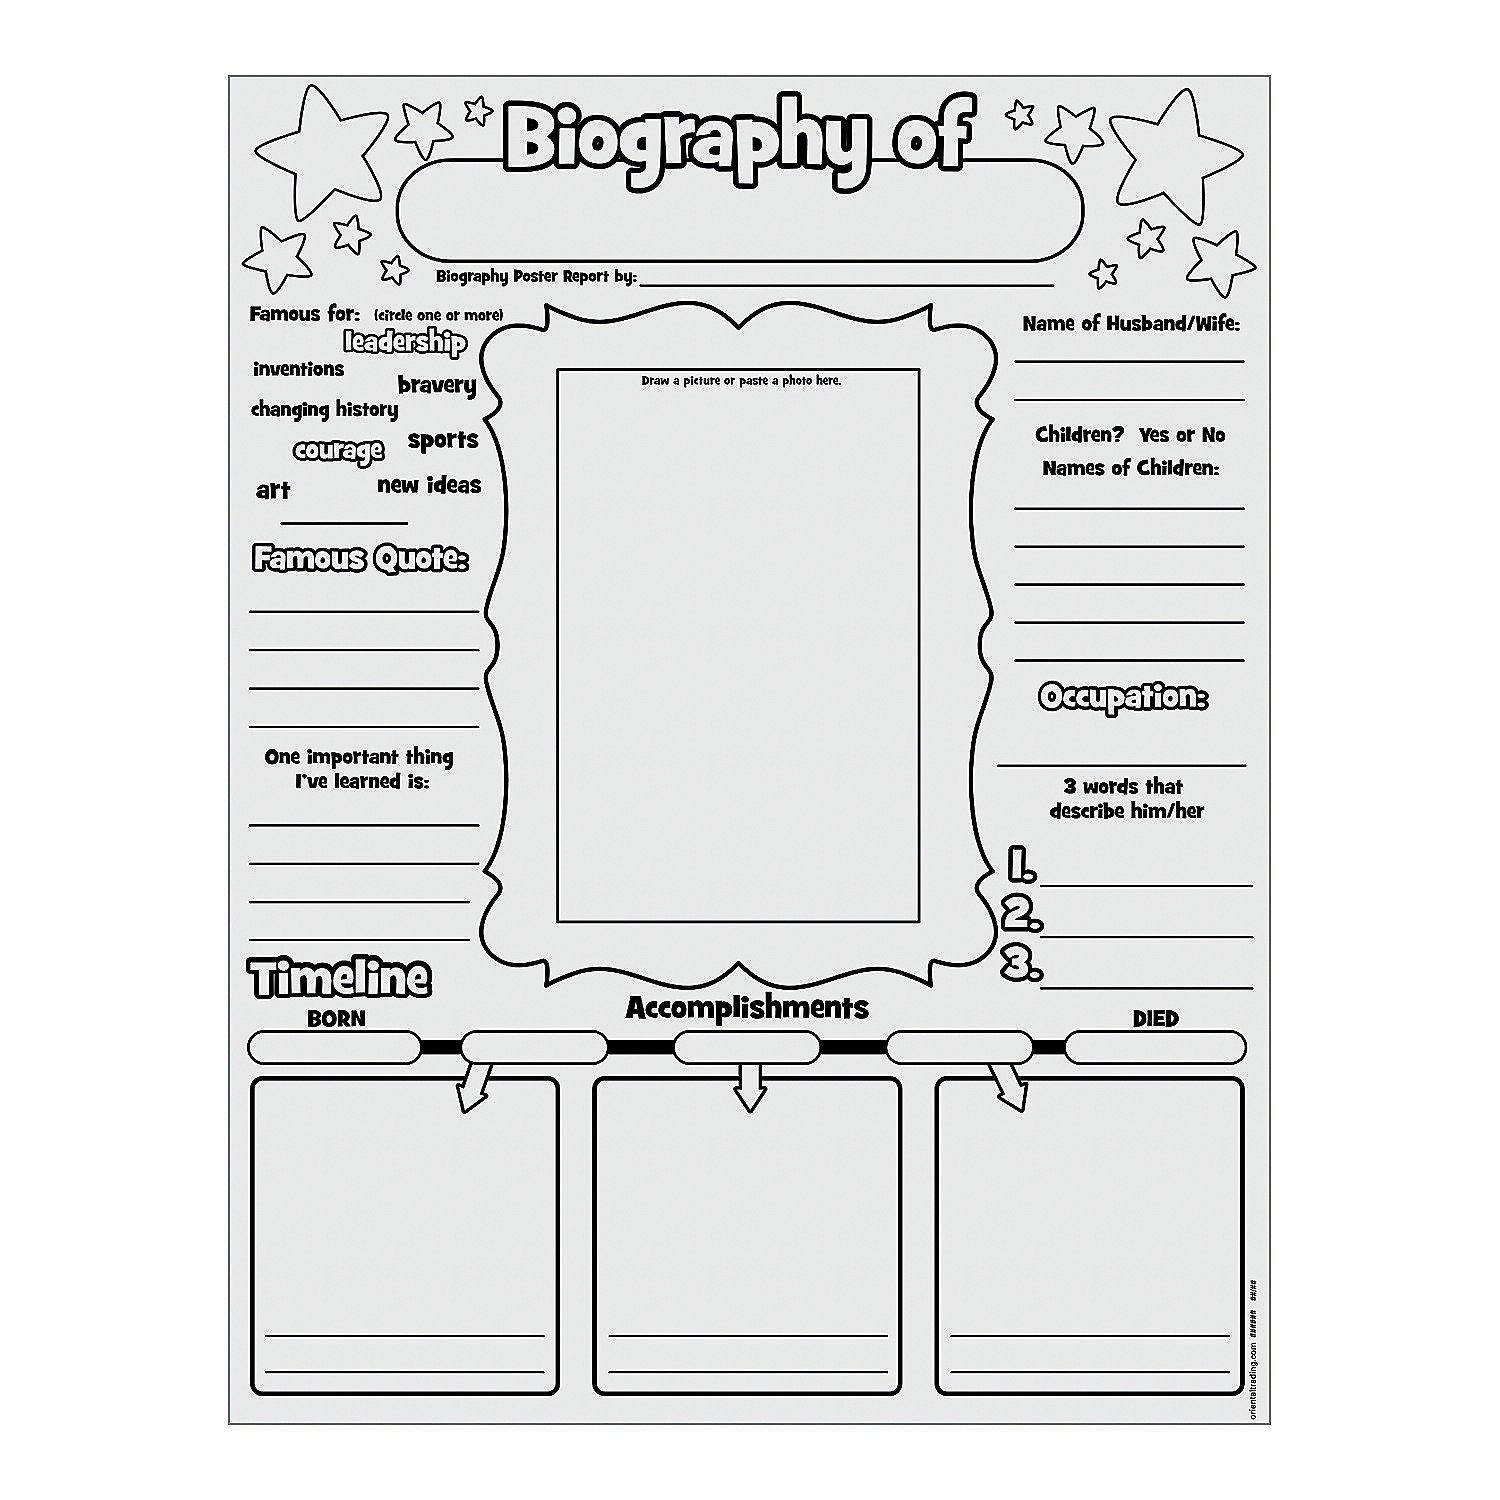 medium resolution of Biography Worksheet Elementary   Printable Worksheets and Activities for  Teachers